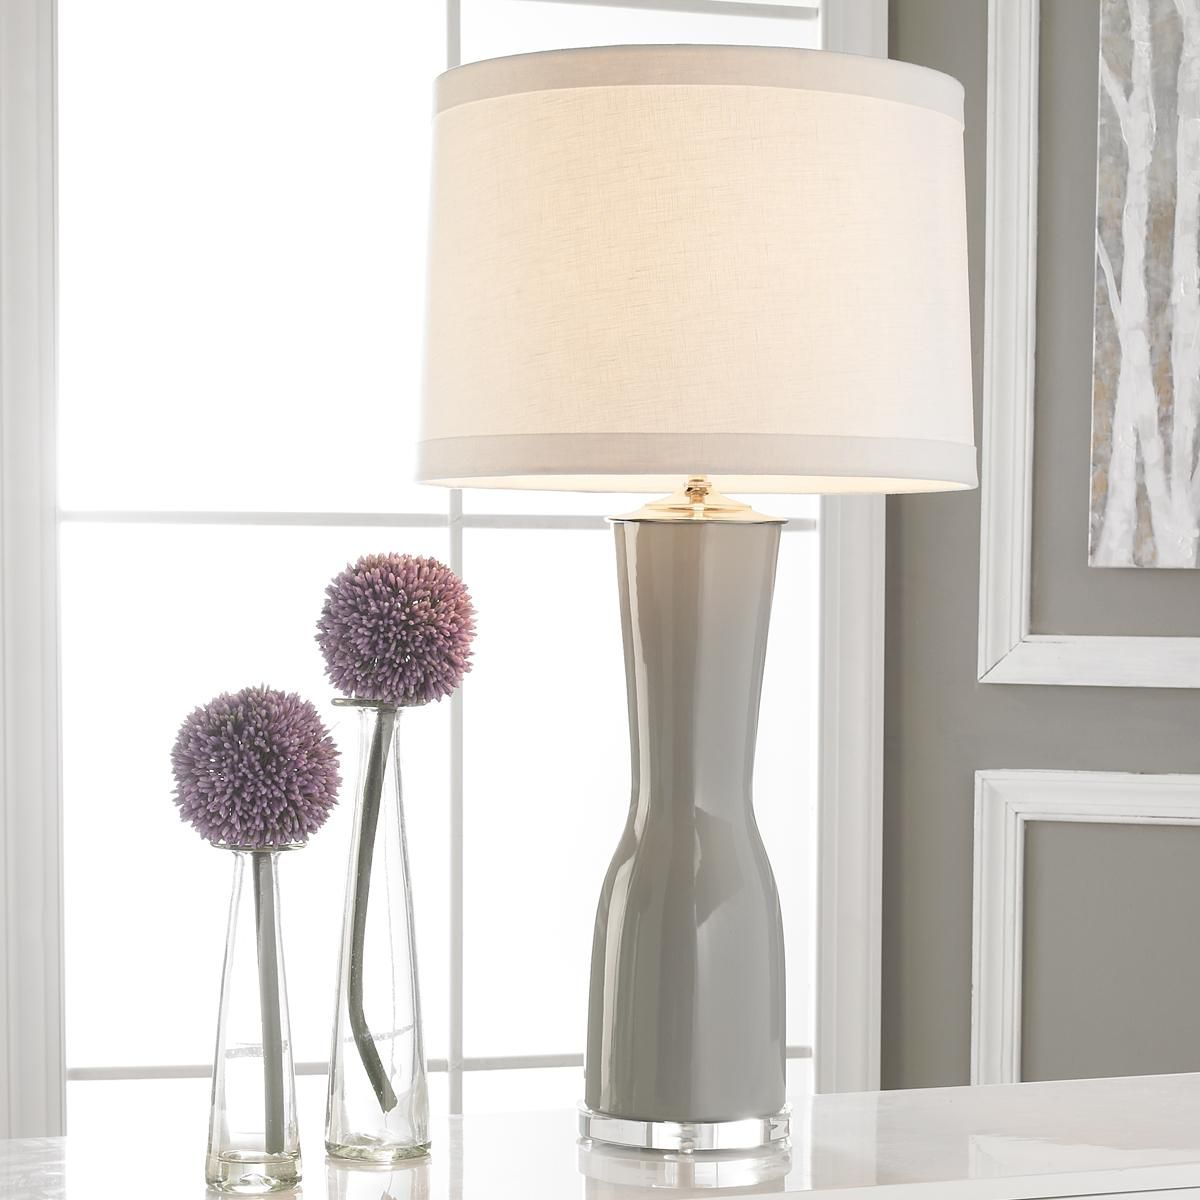 Gray Table Lamps Glamorous Gray Matters Ceramic Table Lamp A Sophisticated Hourglass Shape Design Inspiration